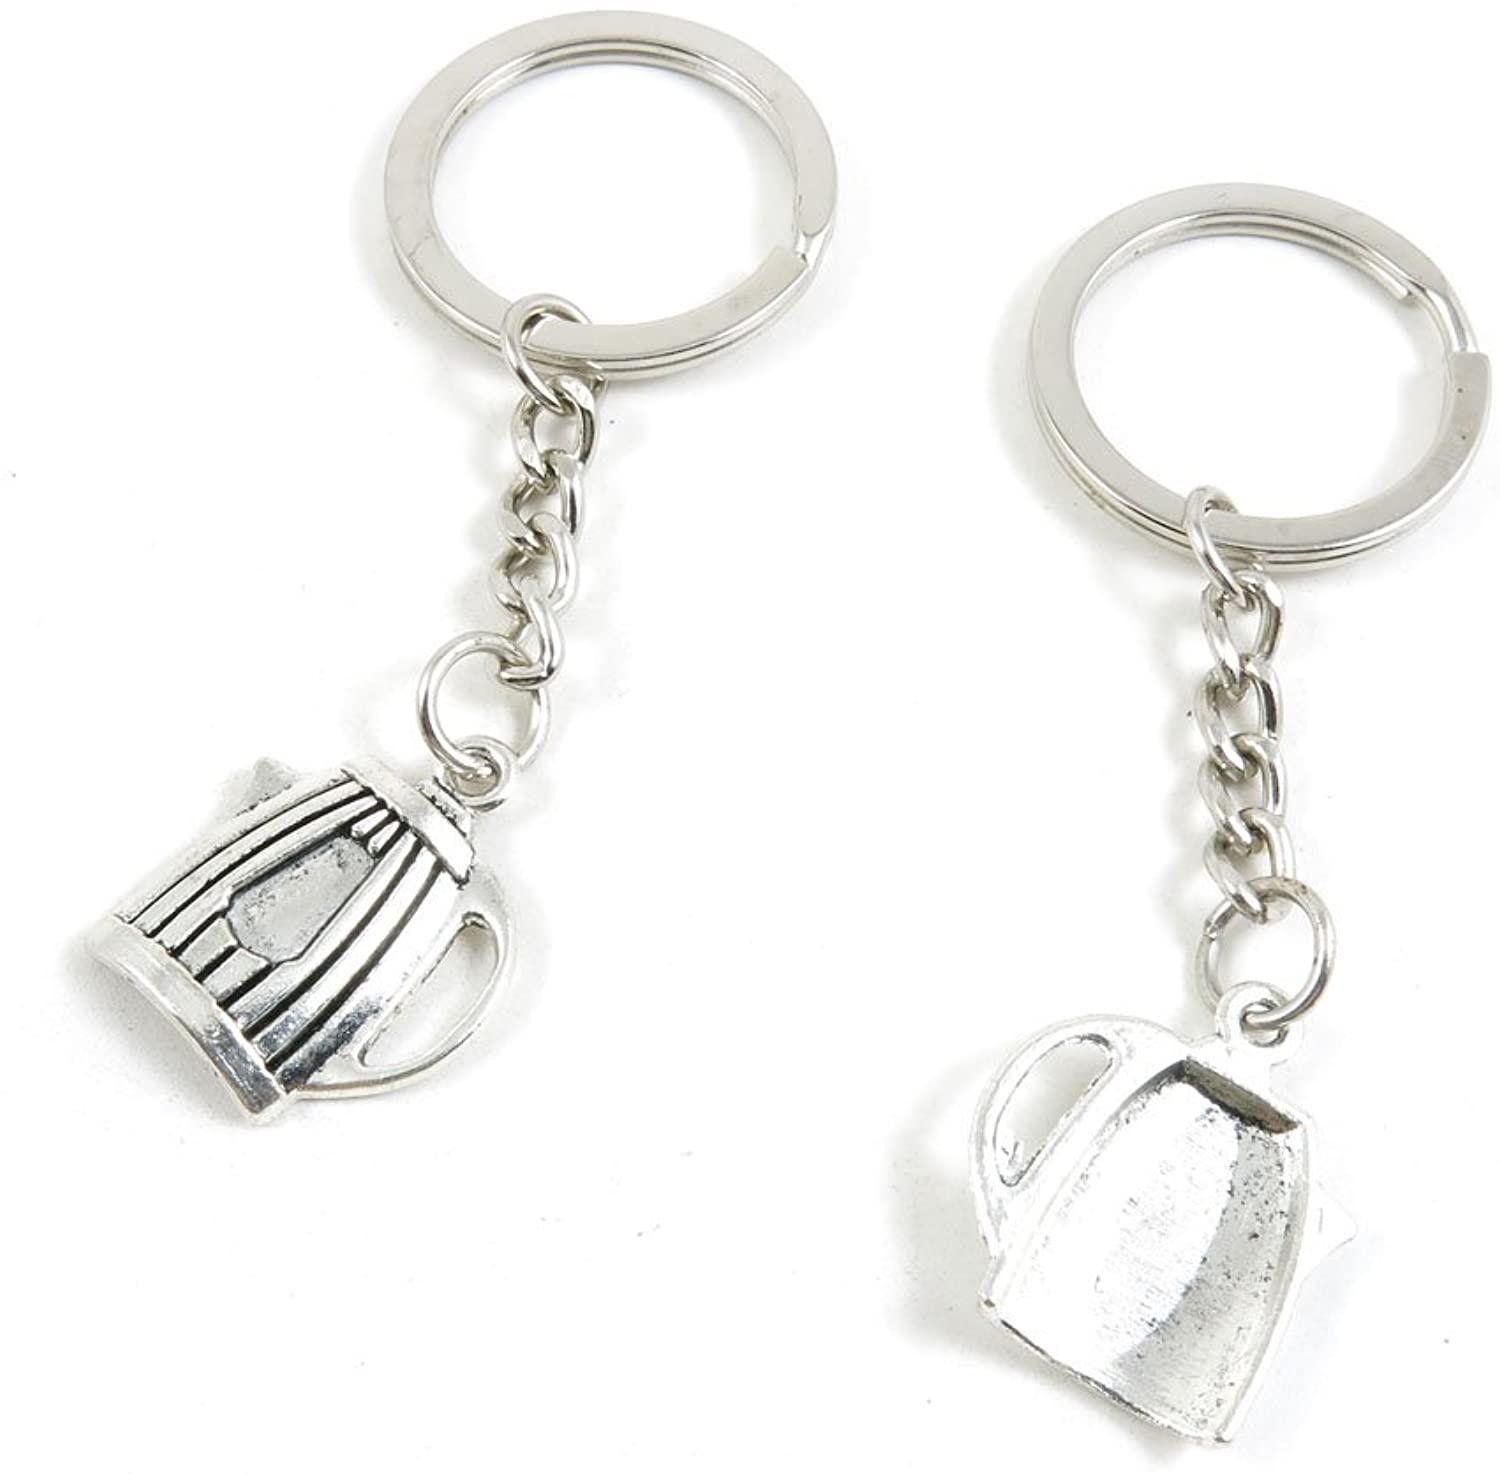 190 Pieces Fashion Jewelry Keyring Keychain Door Car Key Tag Ring Chain Supplier Supply Wholesale Bulk Lots U2QH3 Teapot Water Kettle